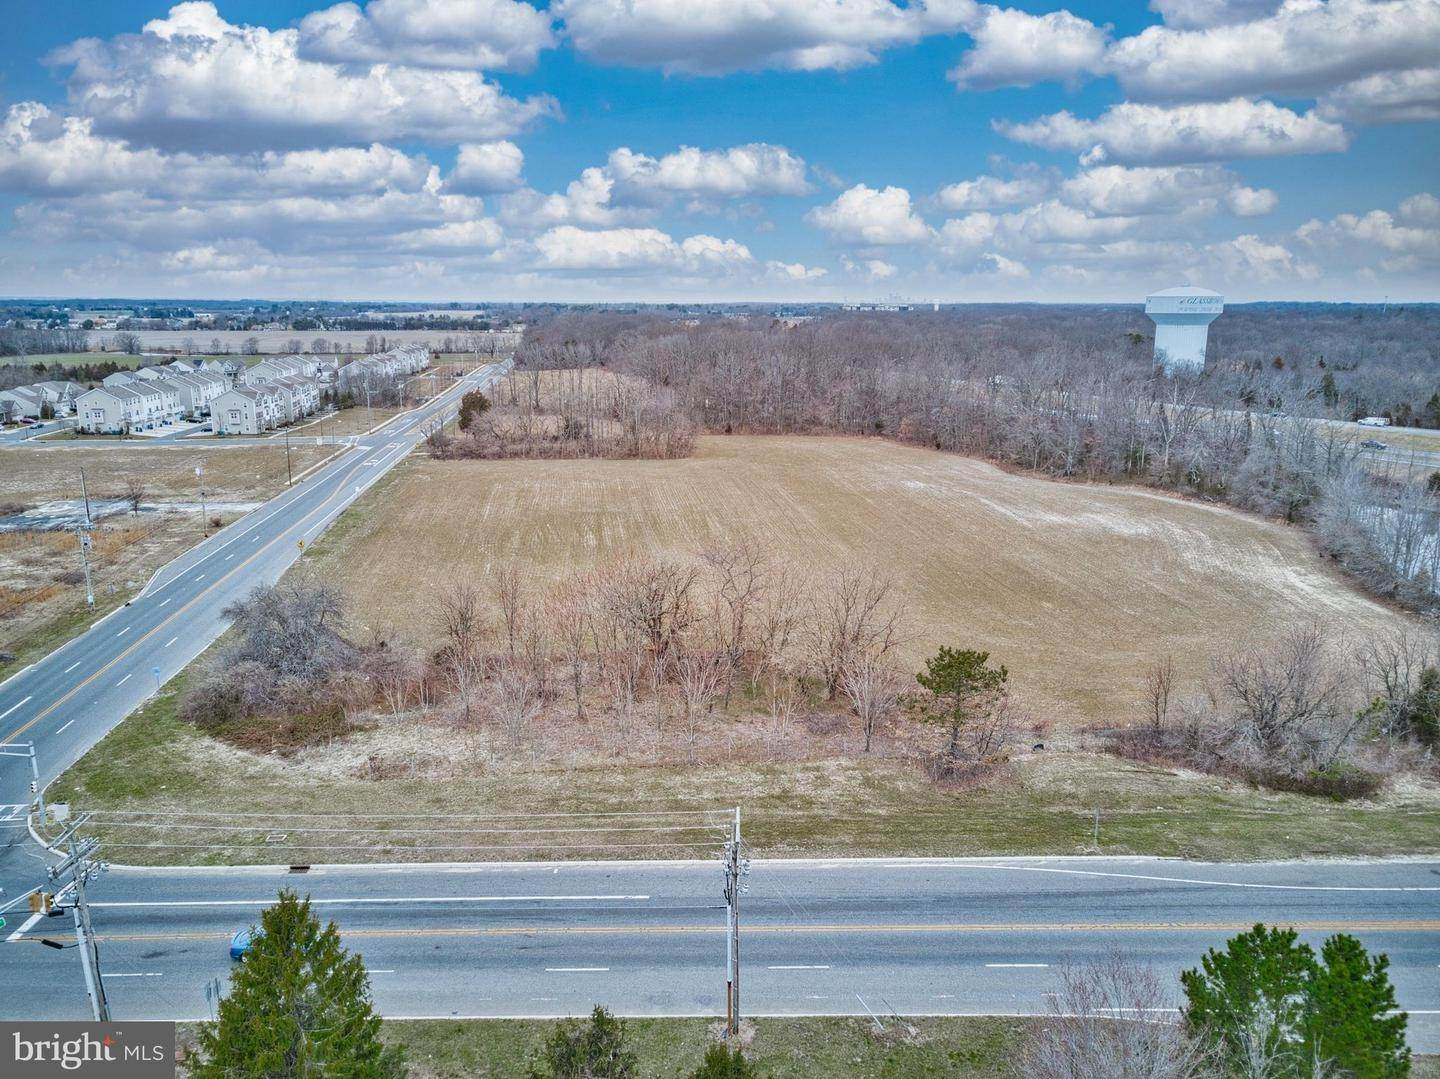 Land for Sale at LOTS 1.O1, 1 & 2 AURA ROAD Glassboro, New Jersey 08028 United States